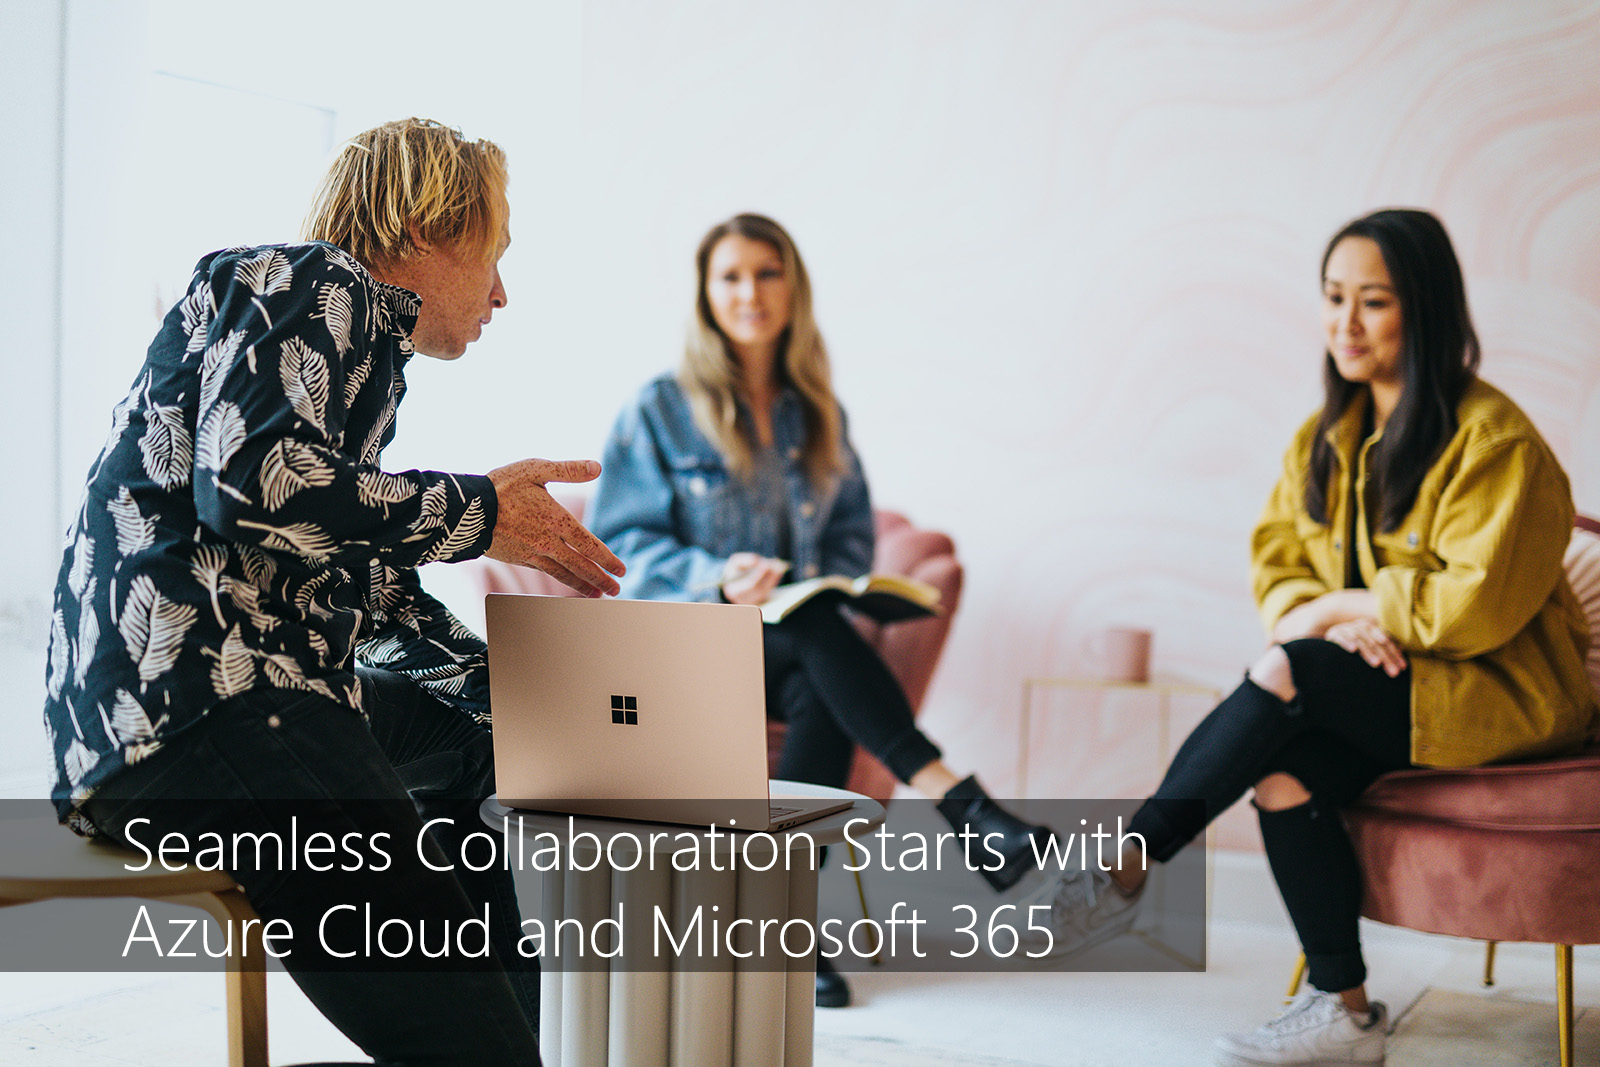 Seamless Collaboration Starts with Azure Cloud and Microsoft 365